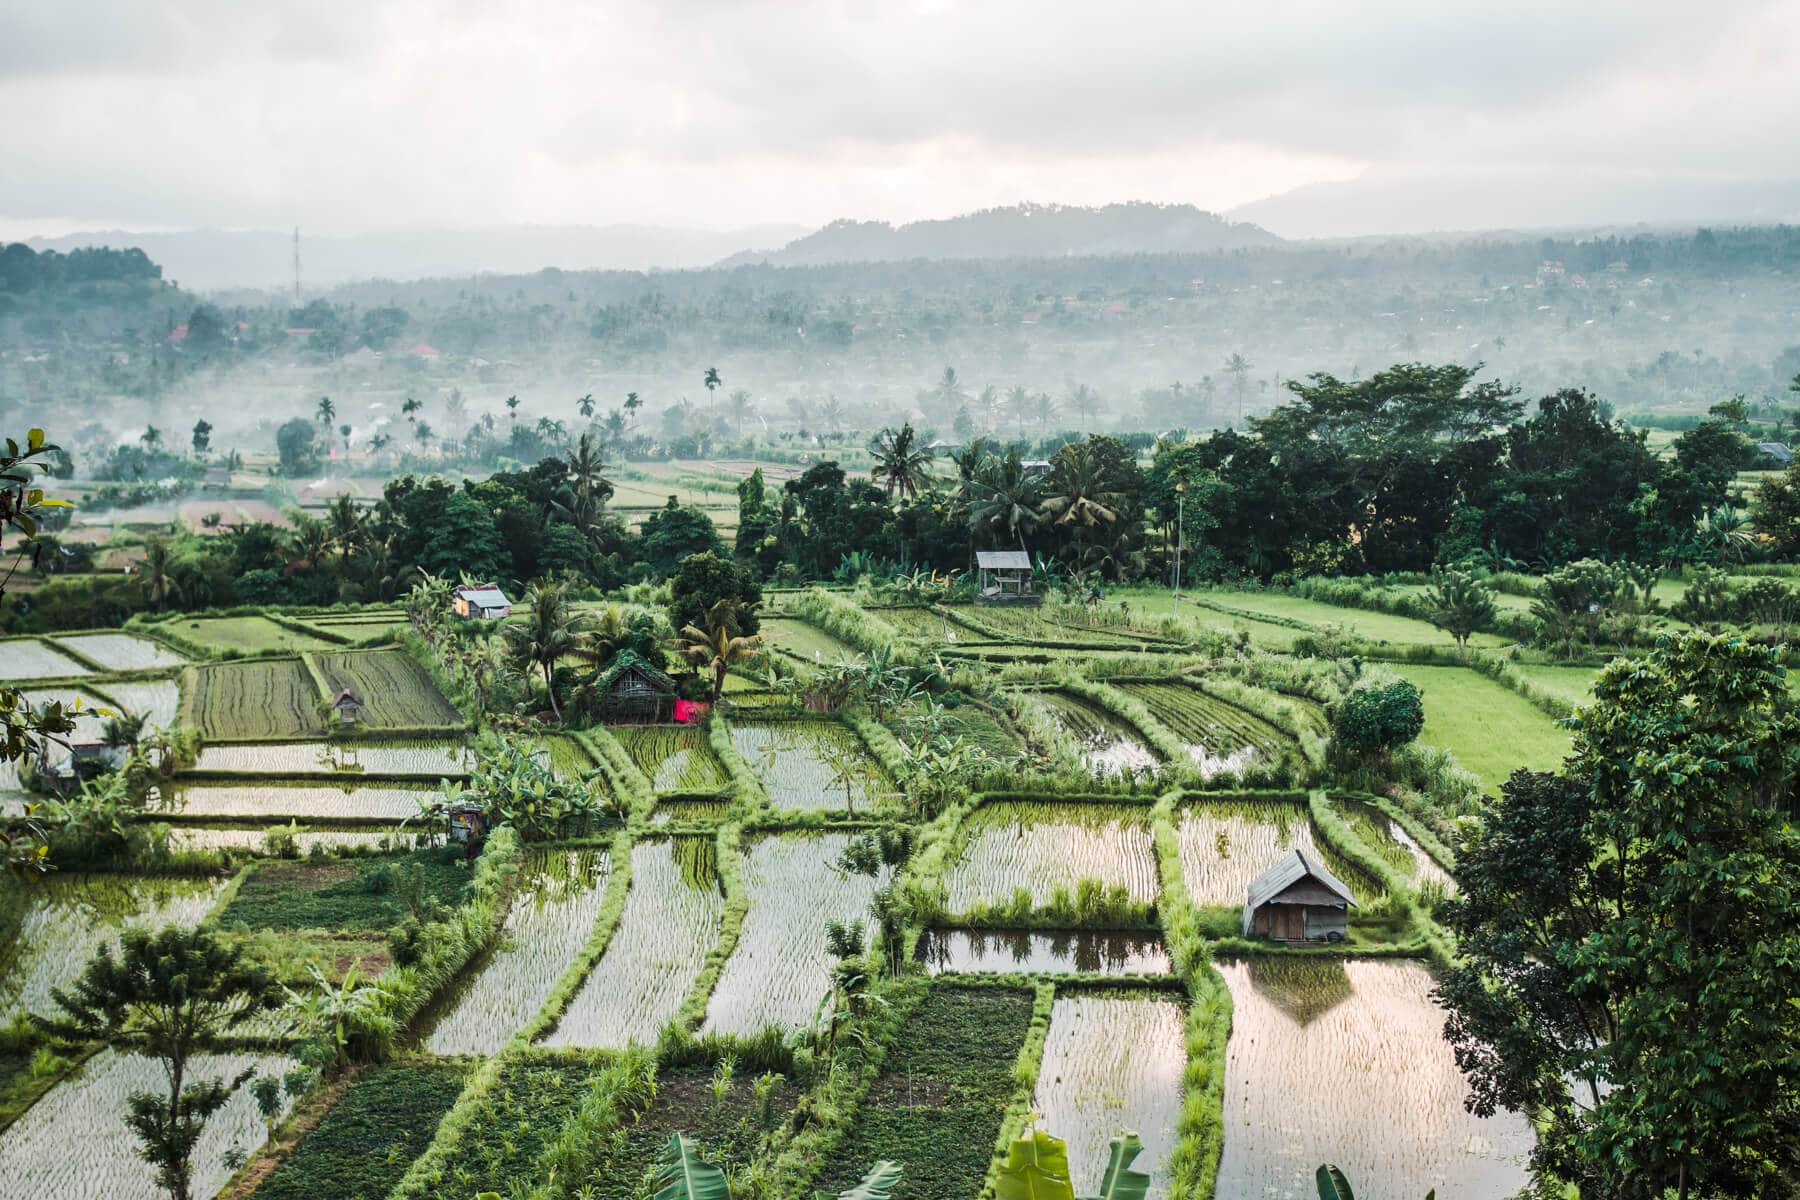 Kubu Carik Bungalows in Karangasem, East Bali. Discover why this incredible hotel should be on your Bali bucket list